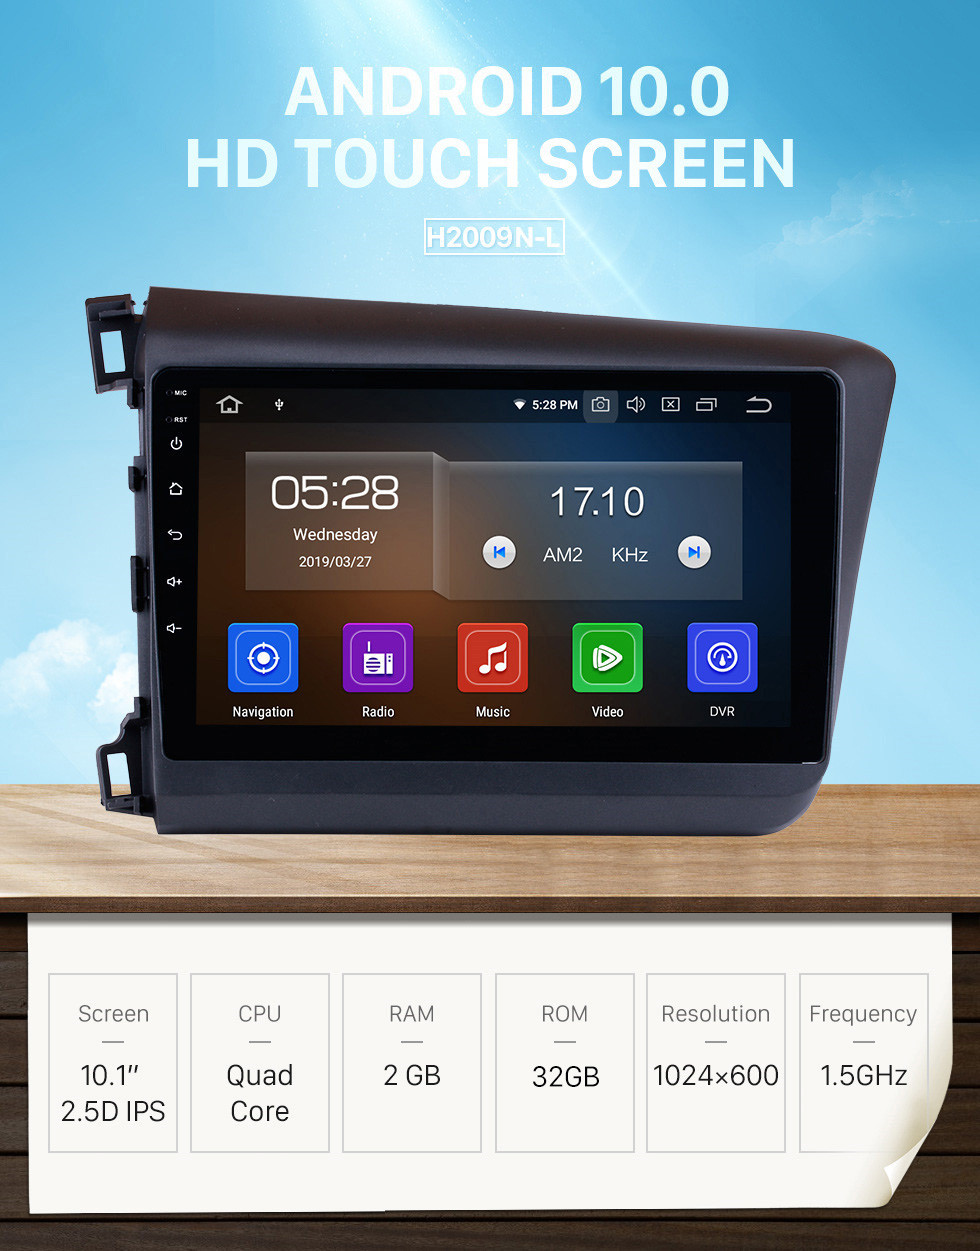 Seicane 10.1 inch For 2012 Honda Civic Android 10.0 Radio GPS navigation system with HD 1024*600 touch screen Bluetooth OBD2 DVR Rearview camera TV 1080P Video 3G WIFI Steering Wheel Control USB Mirror link